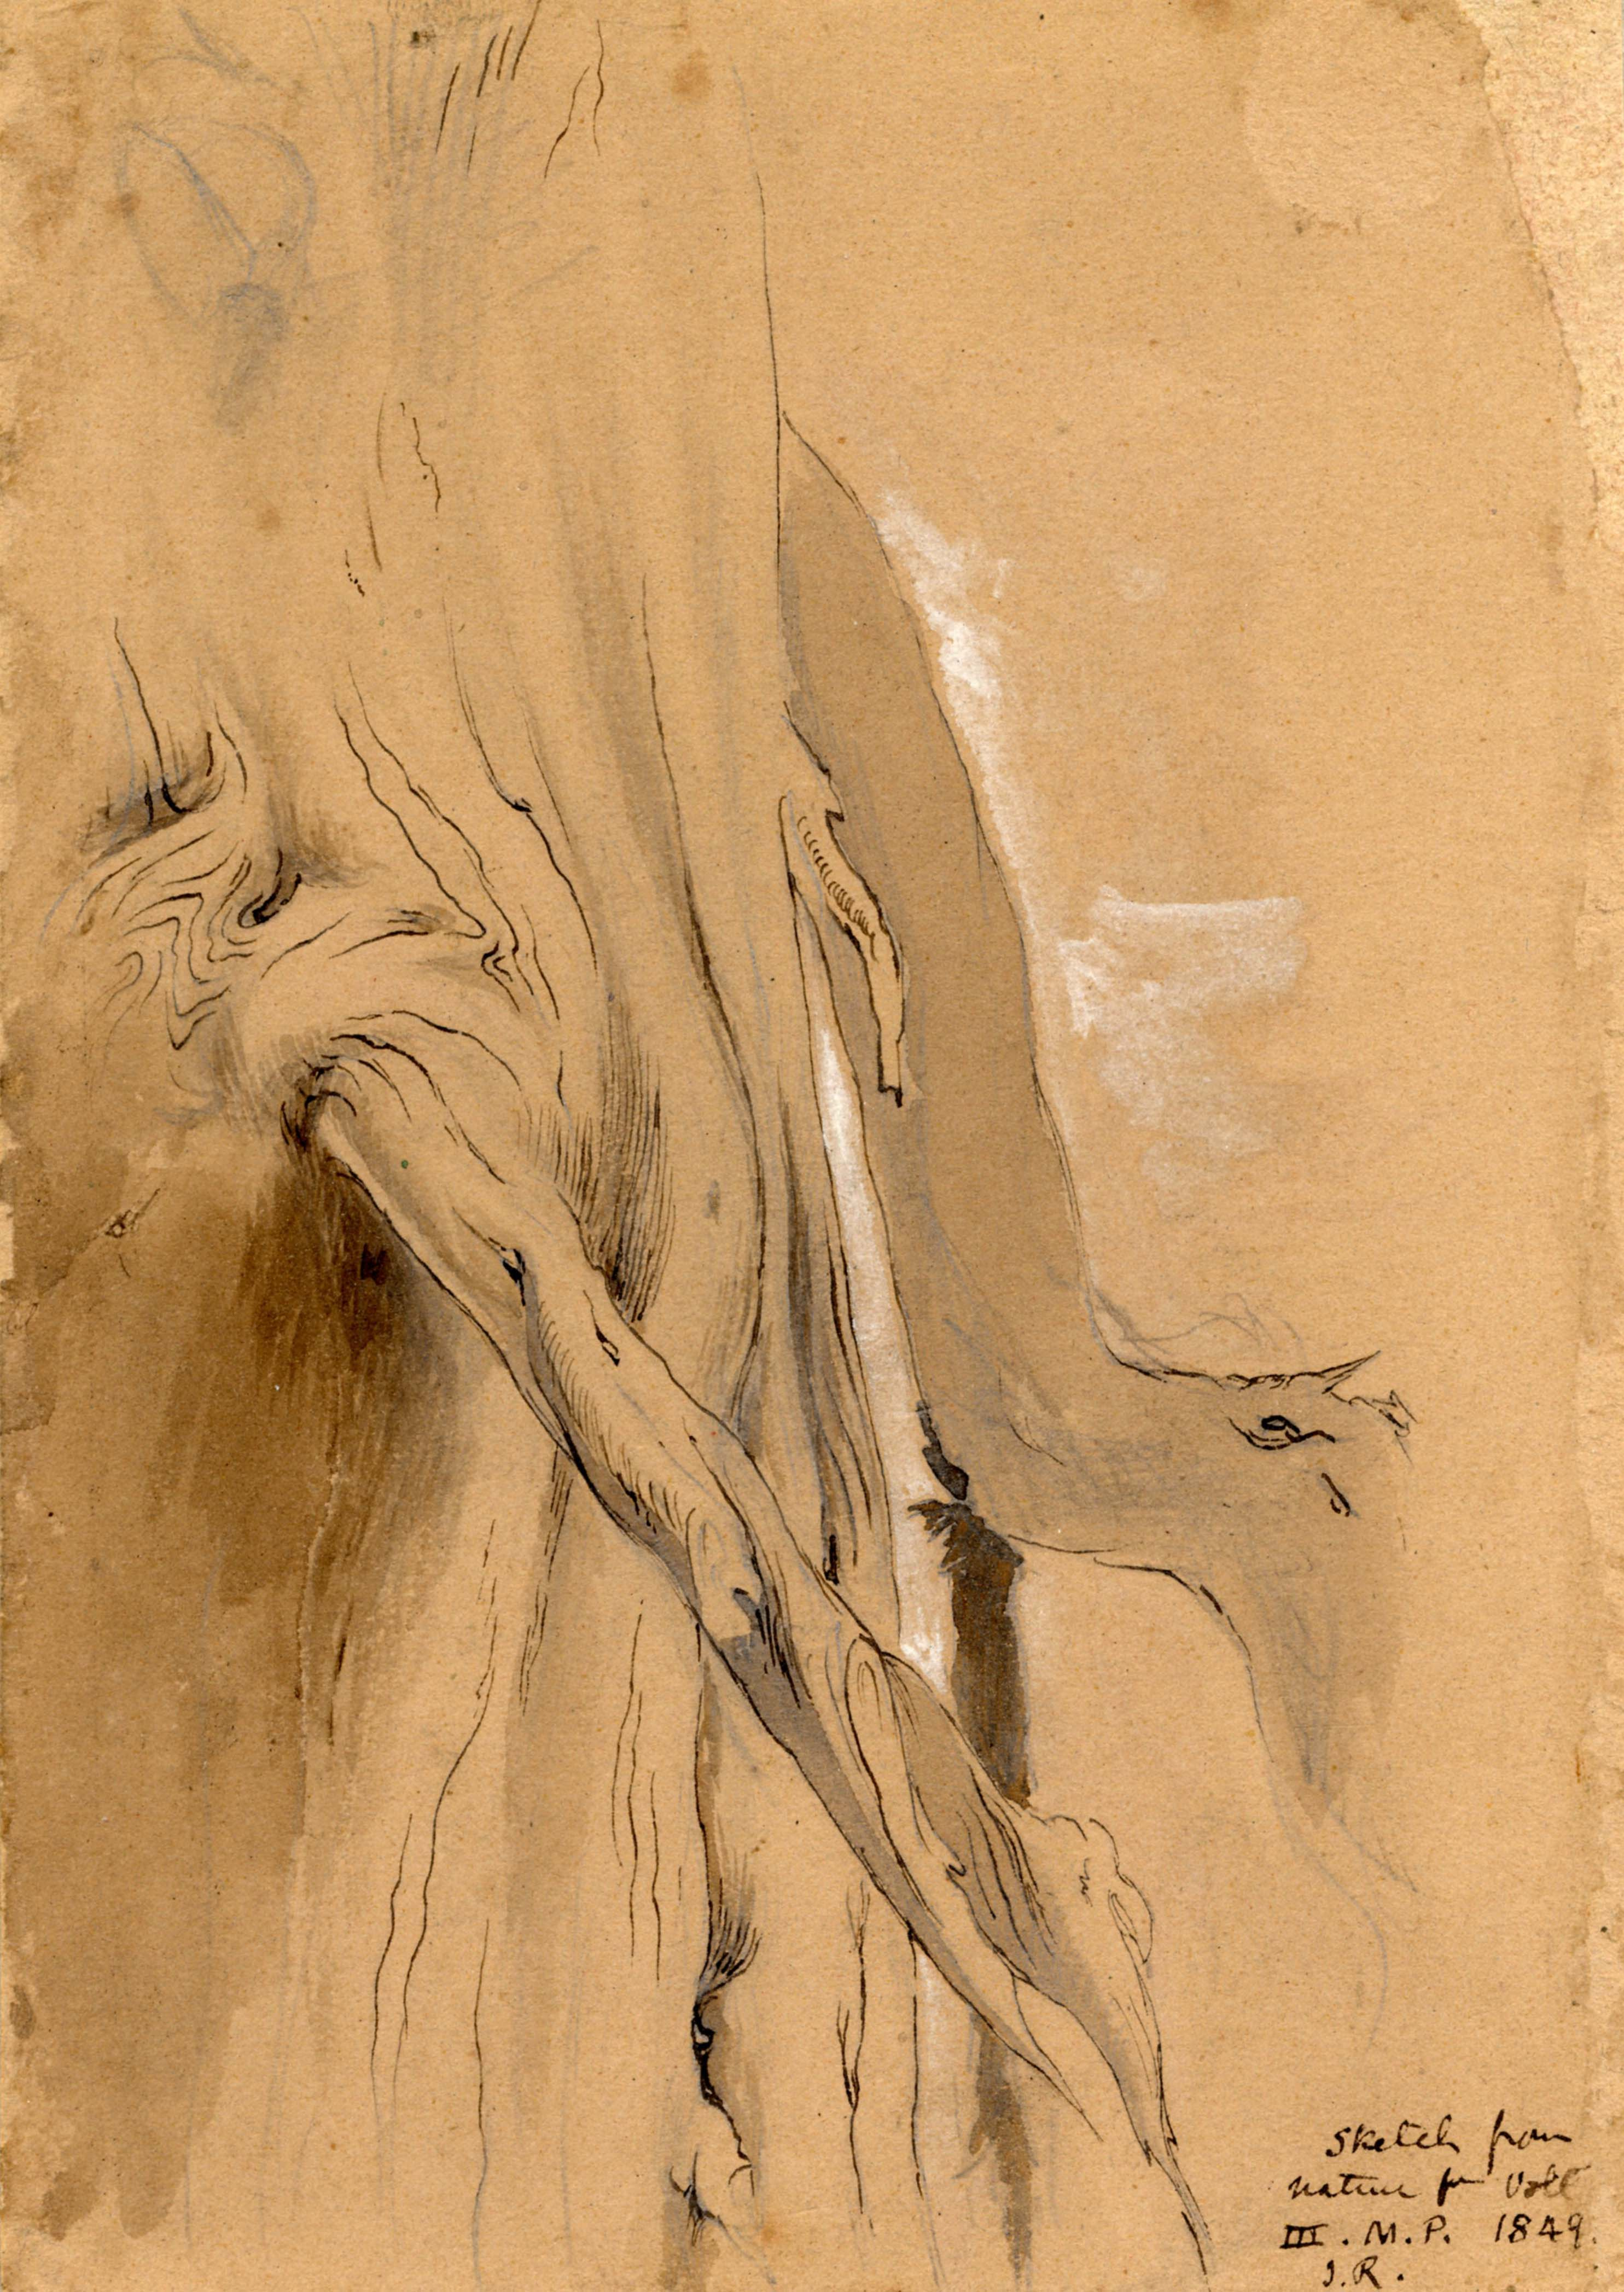 John Ruskin, Strength of old pine 1849, RF1438 © Ruskin Foundation